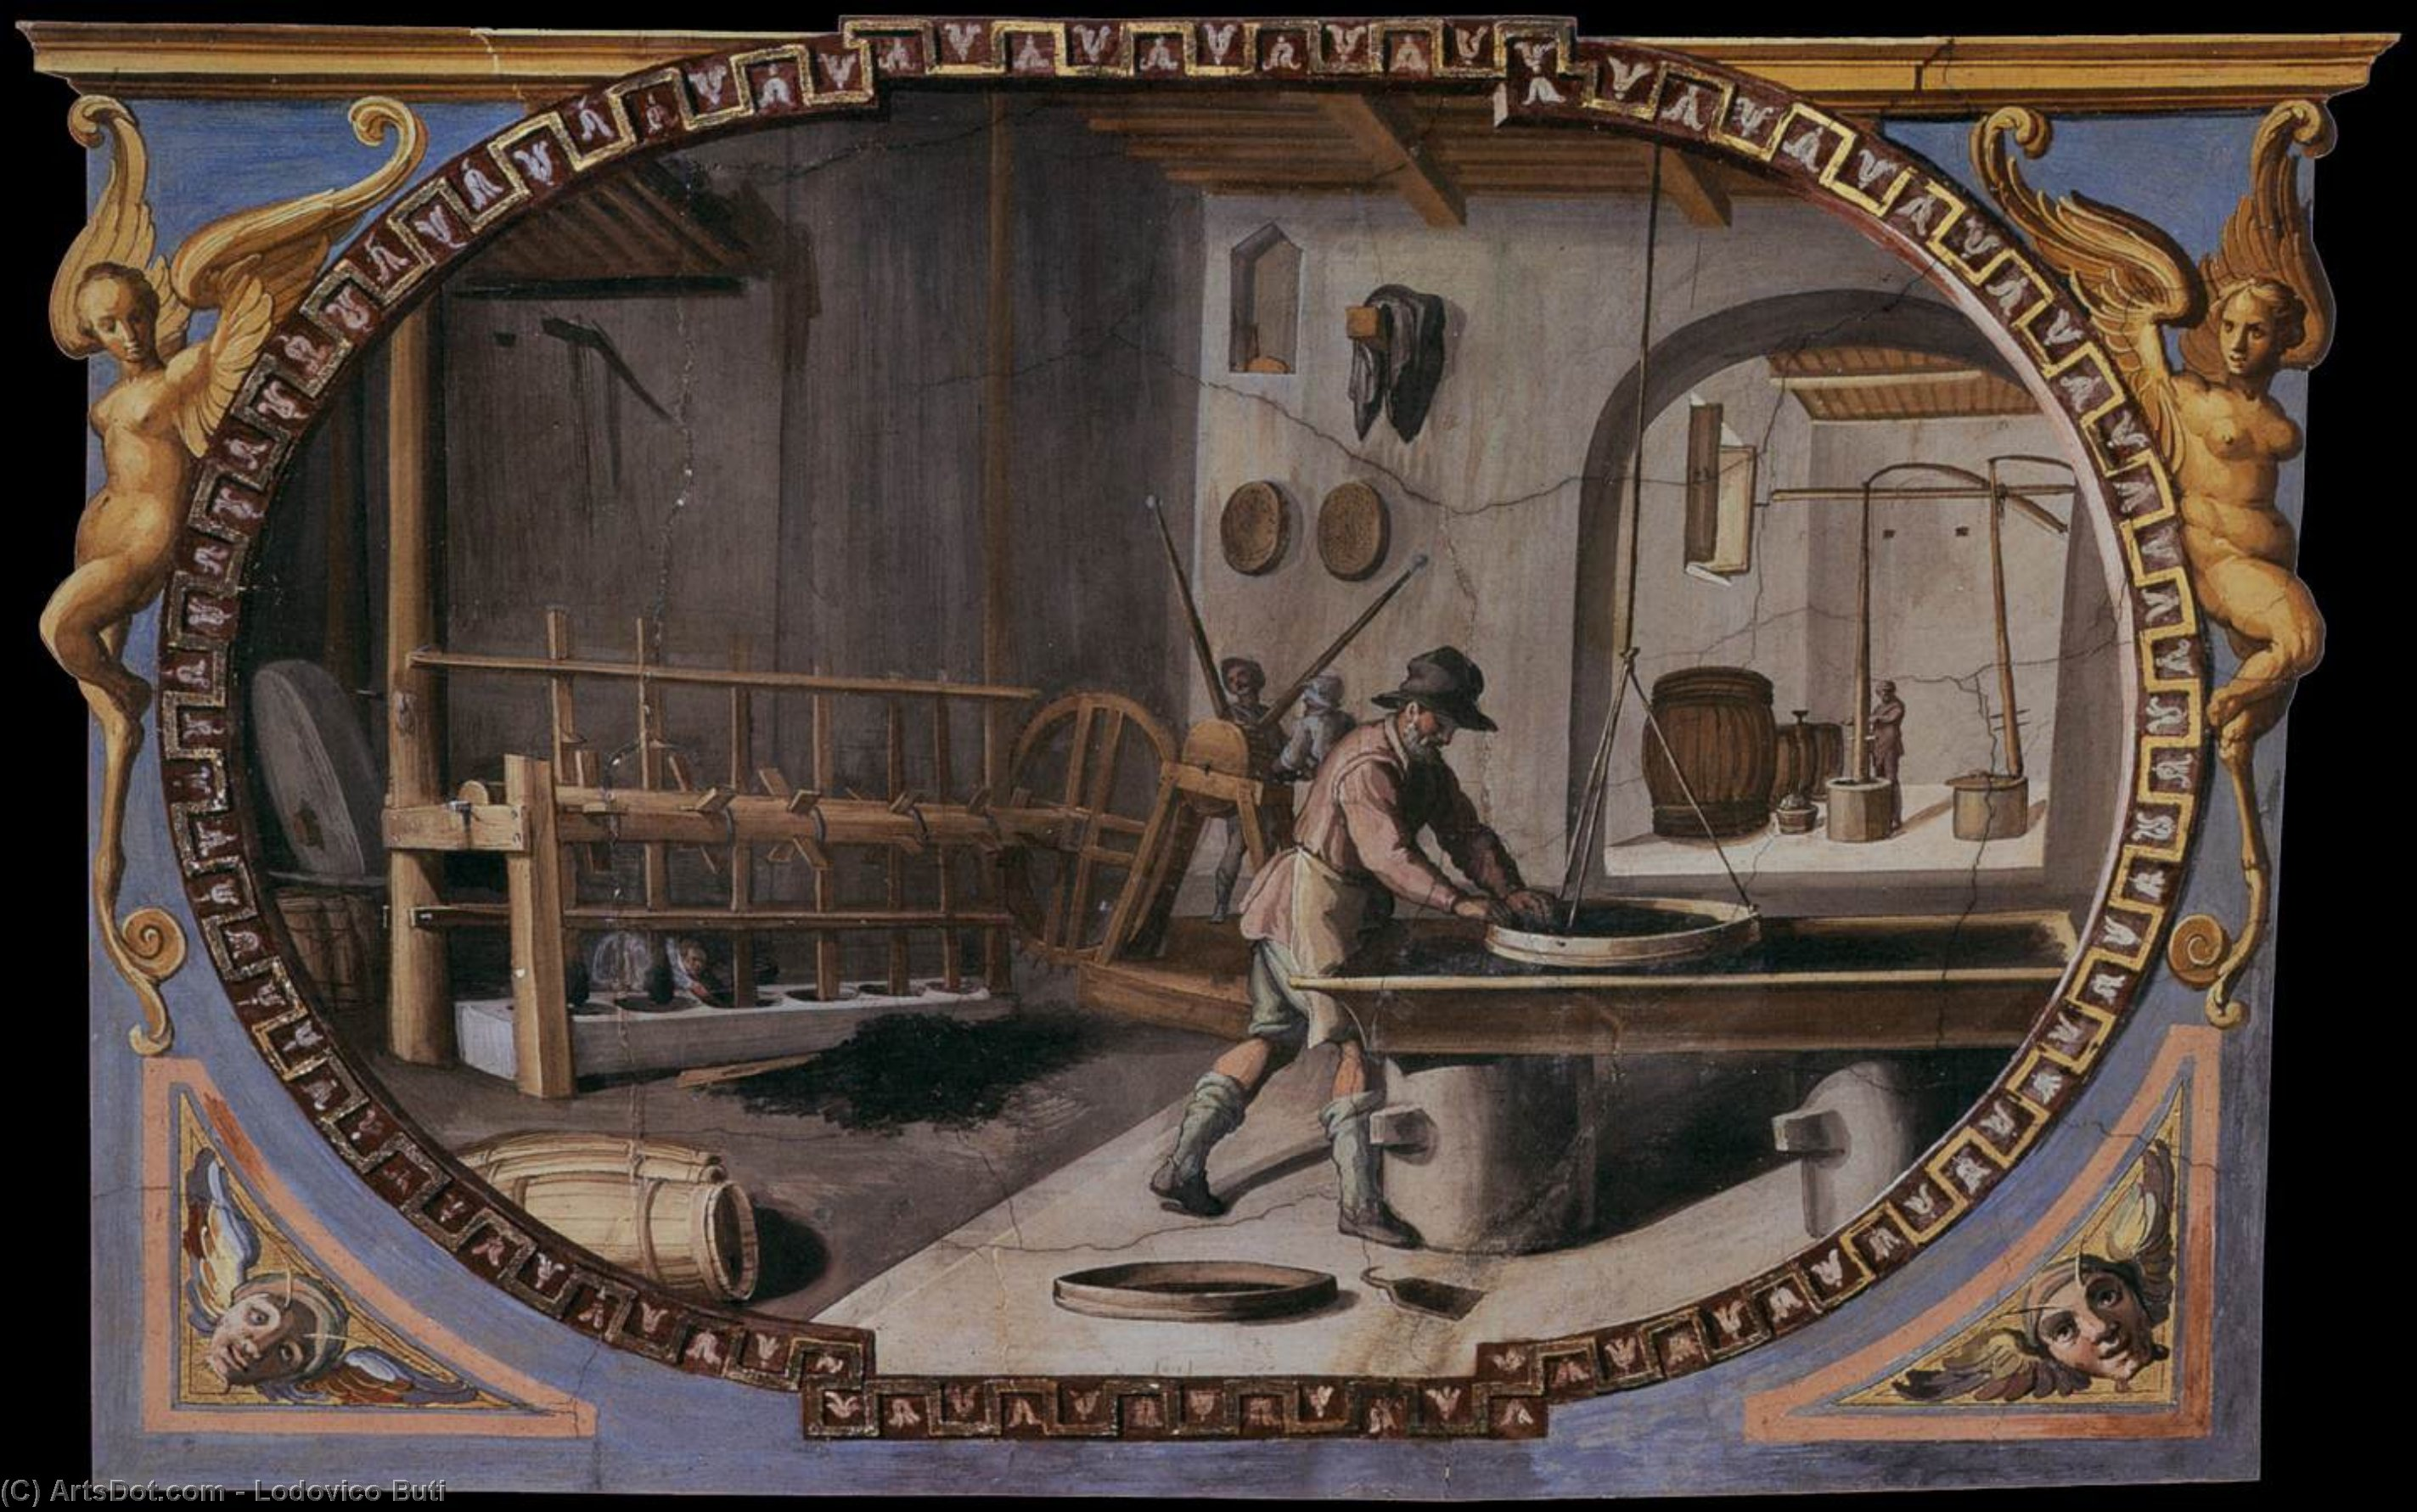 Preparation of Gunpowder, Frescoes by Lodovico Buti (1560-1611)